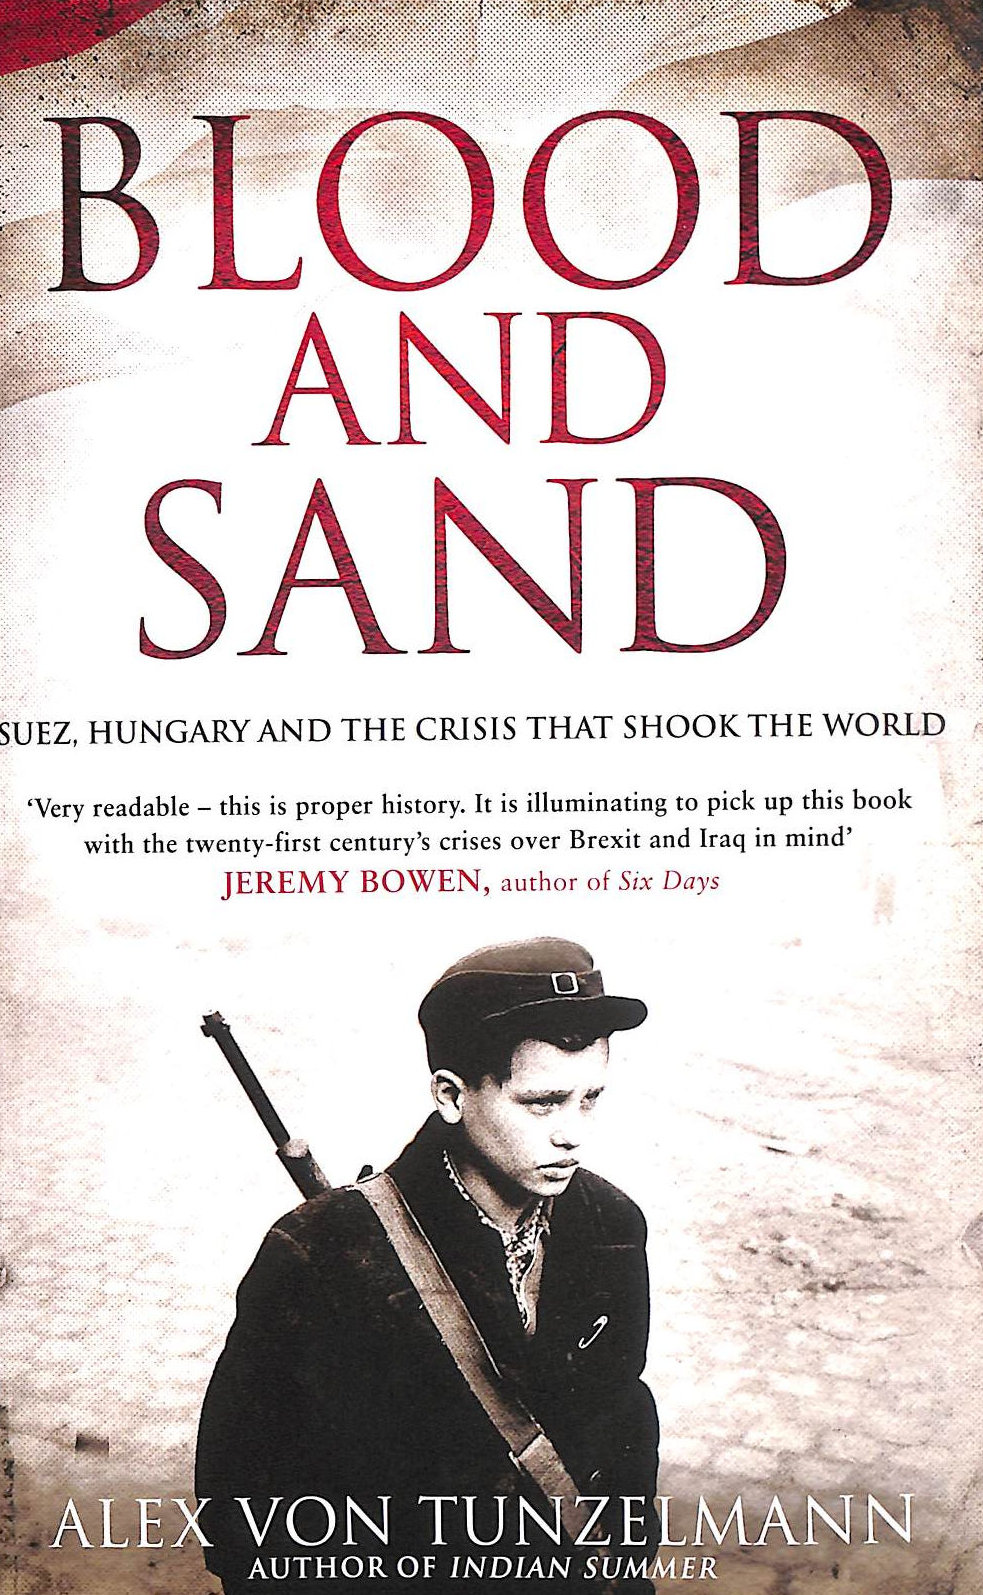 Image for Blood And Sand: Suez, Hungary And The Crisis That Shook The World